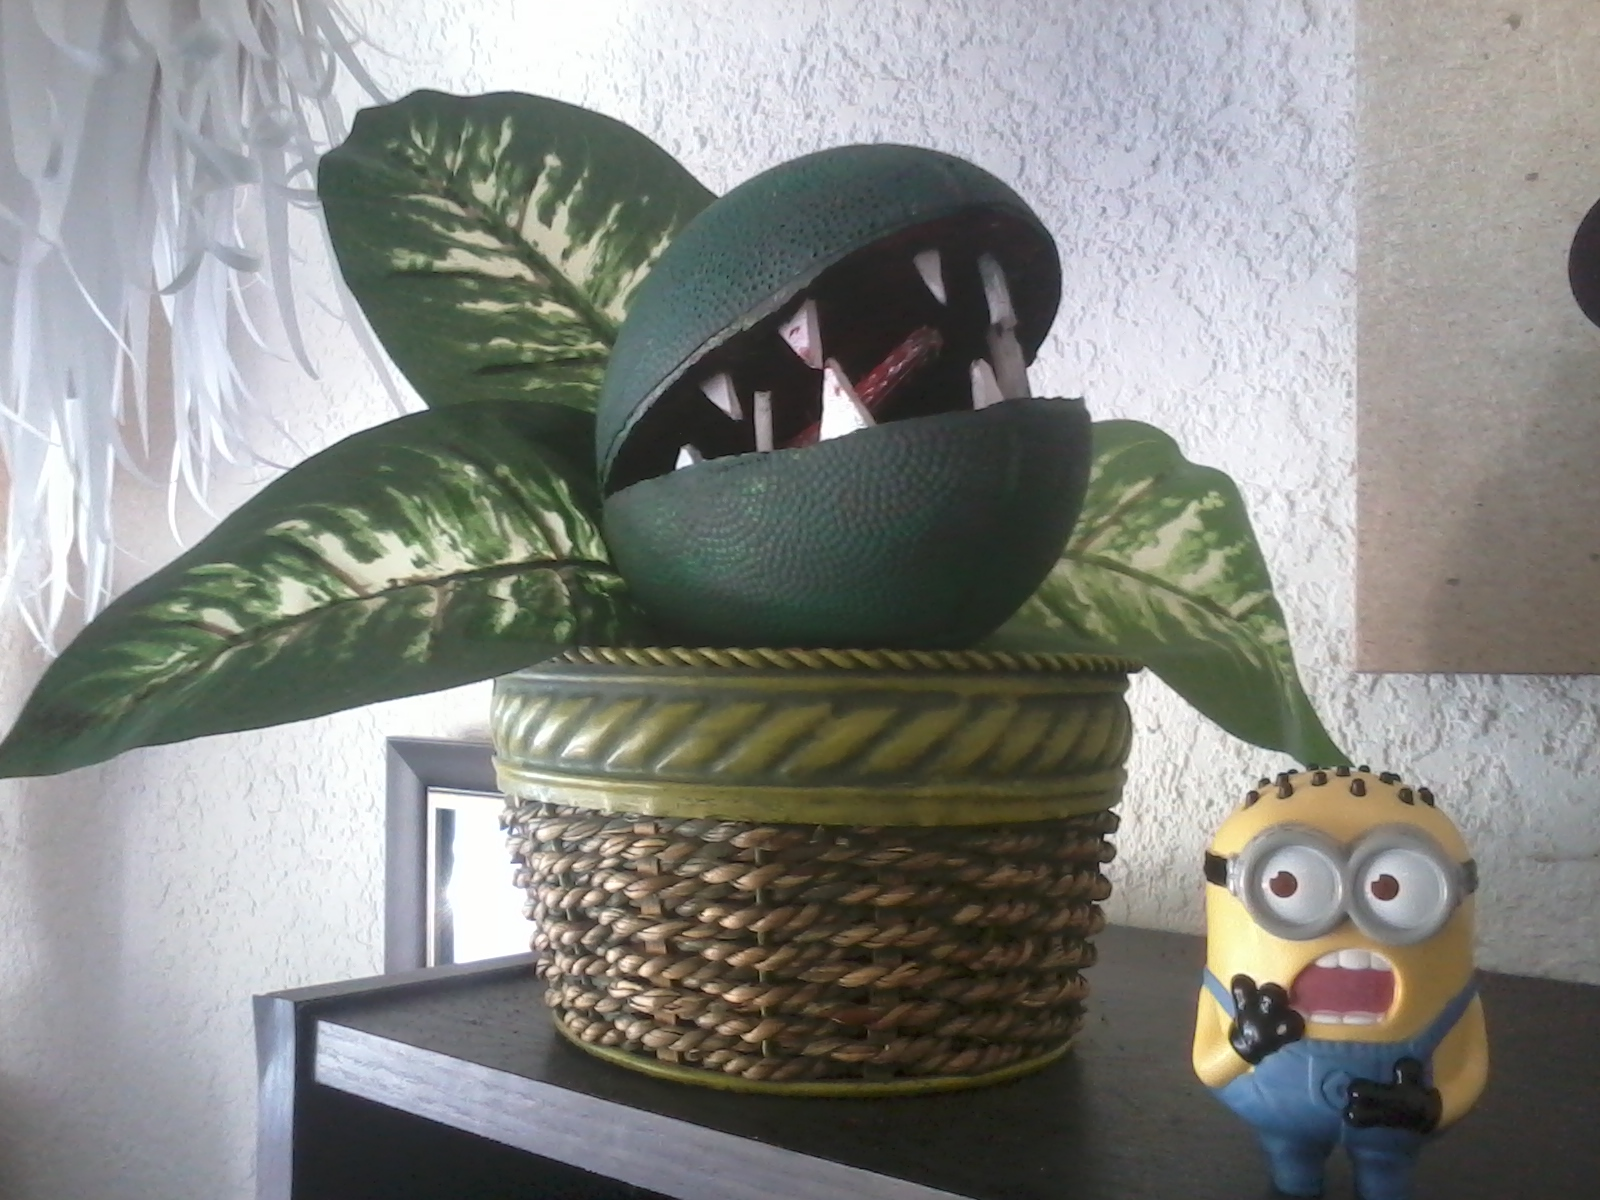 Easy Audrey II from Little Shop of Horrors